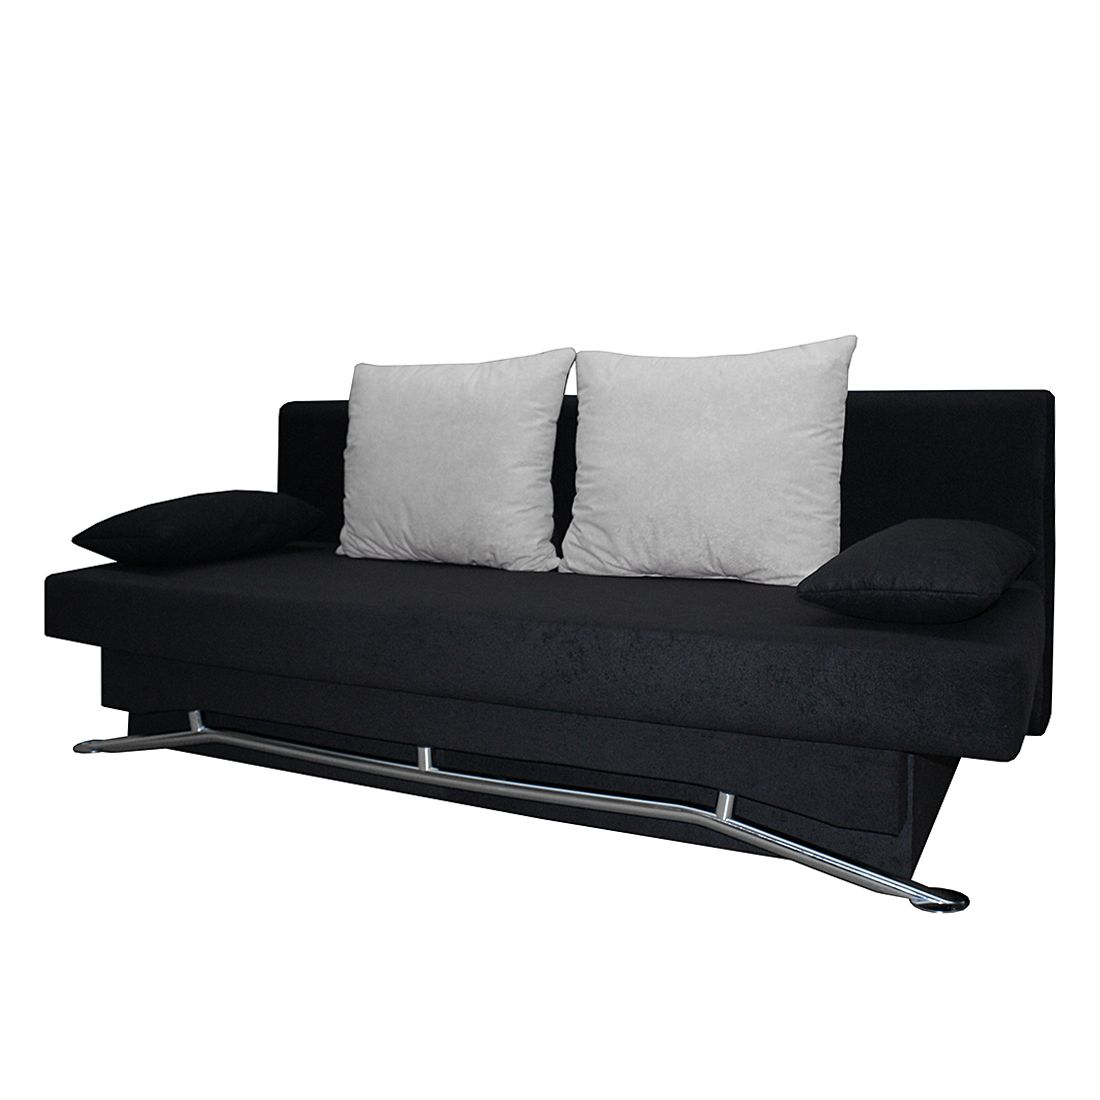 Canapé convertible Flipster - Microfibre noire, mooved